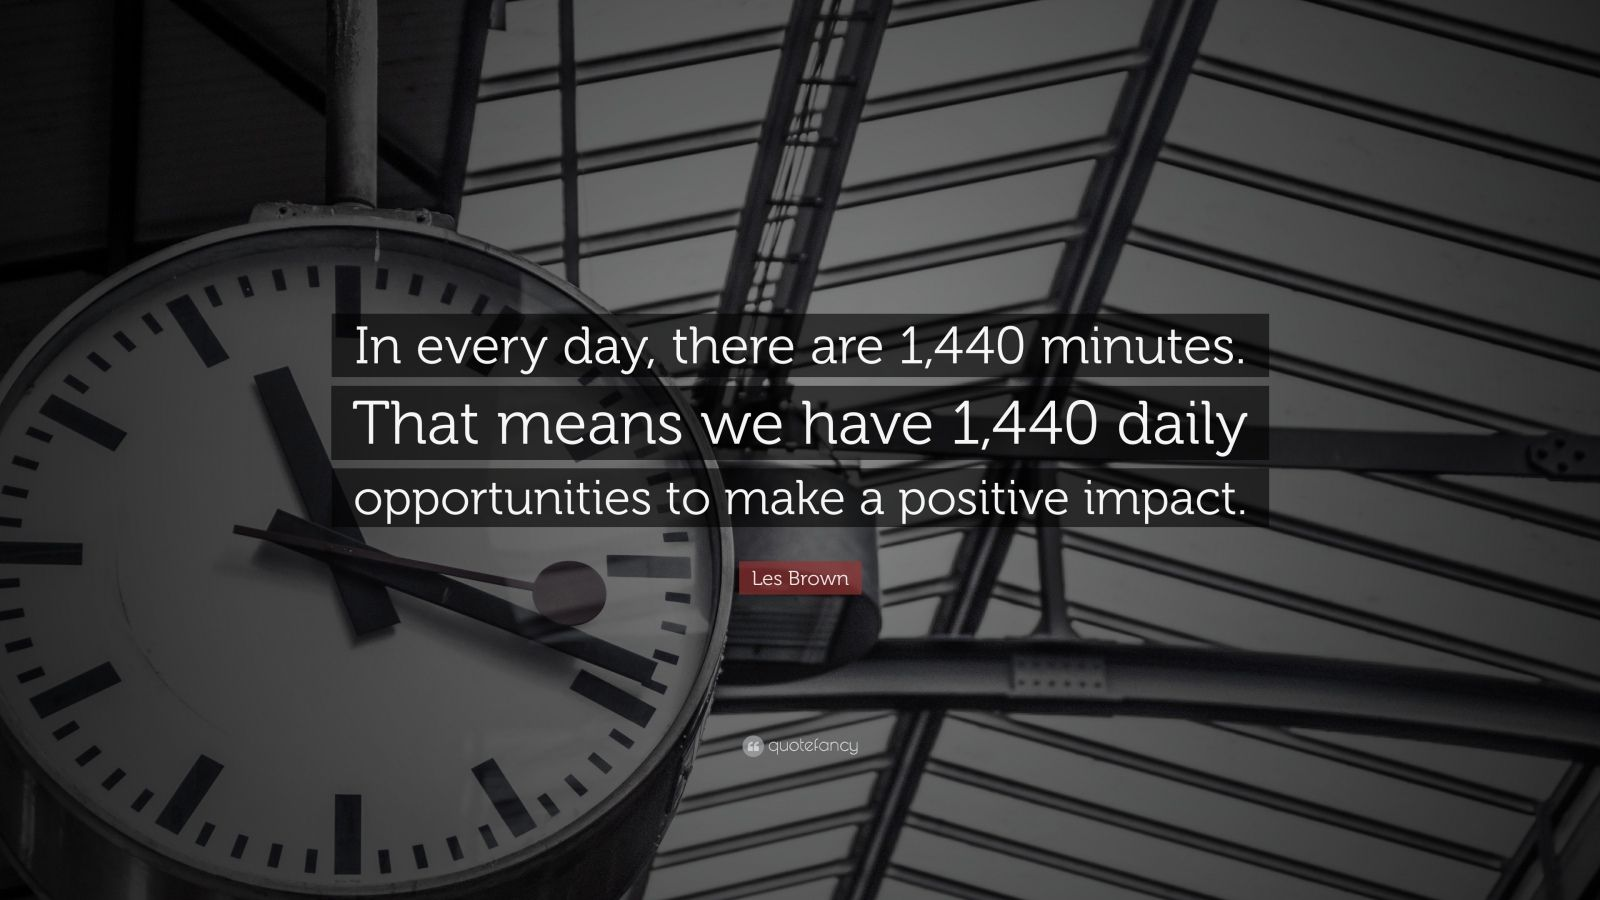 """Opportunity Quotes: """"In every day, there are 1,440 minutes. That means we have 1,440 daily opportunities to make a positive impact."""" — Les Brown"""